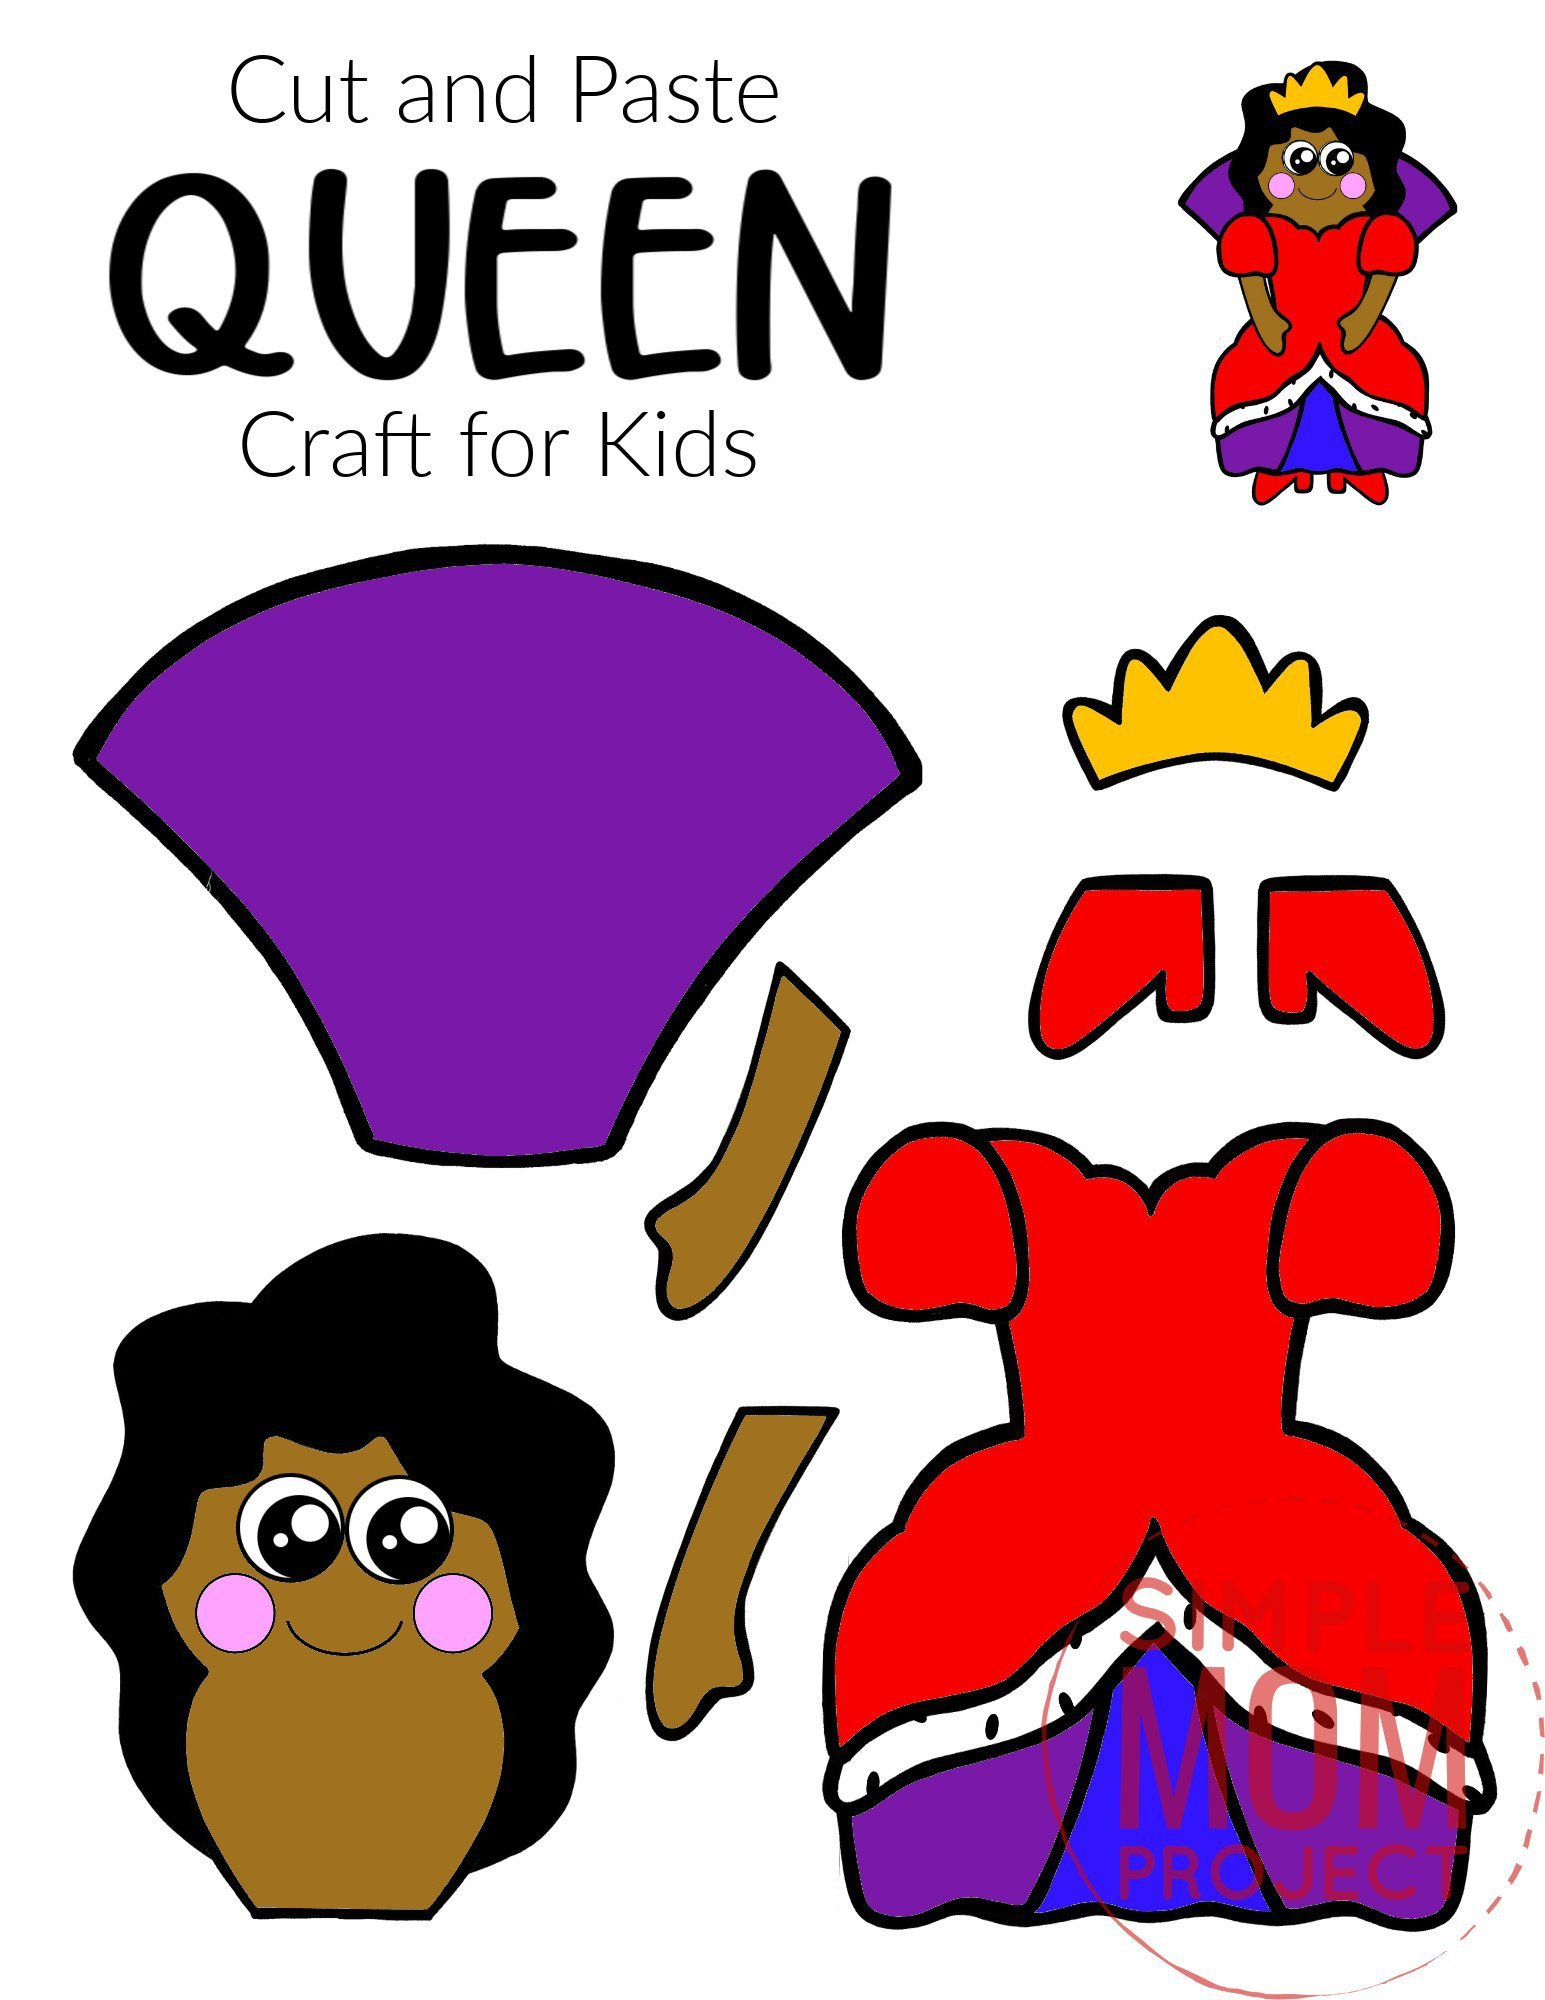 Free Printable Cut and Paste Queen Craft Template Craft for kids, preschoolers and toddlers